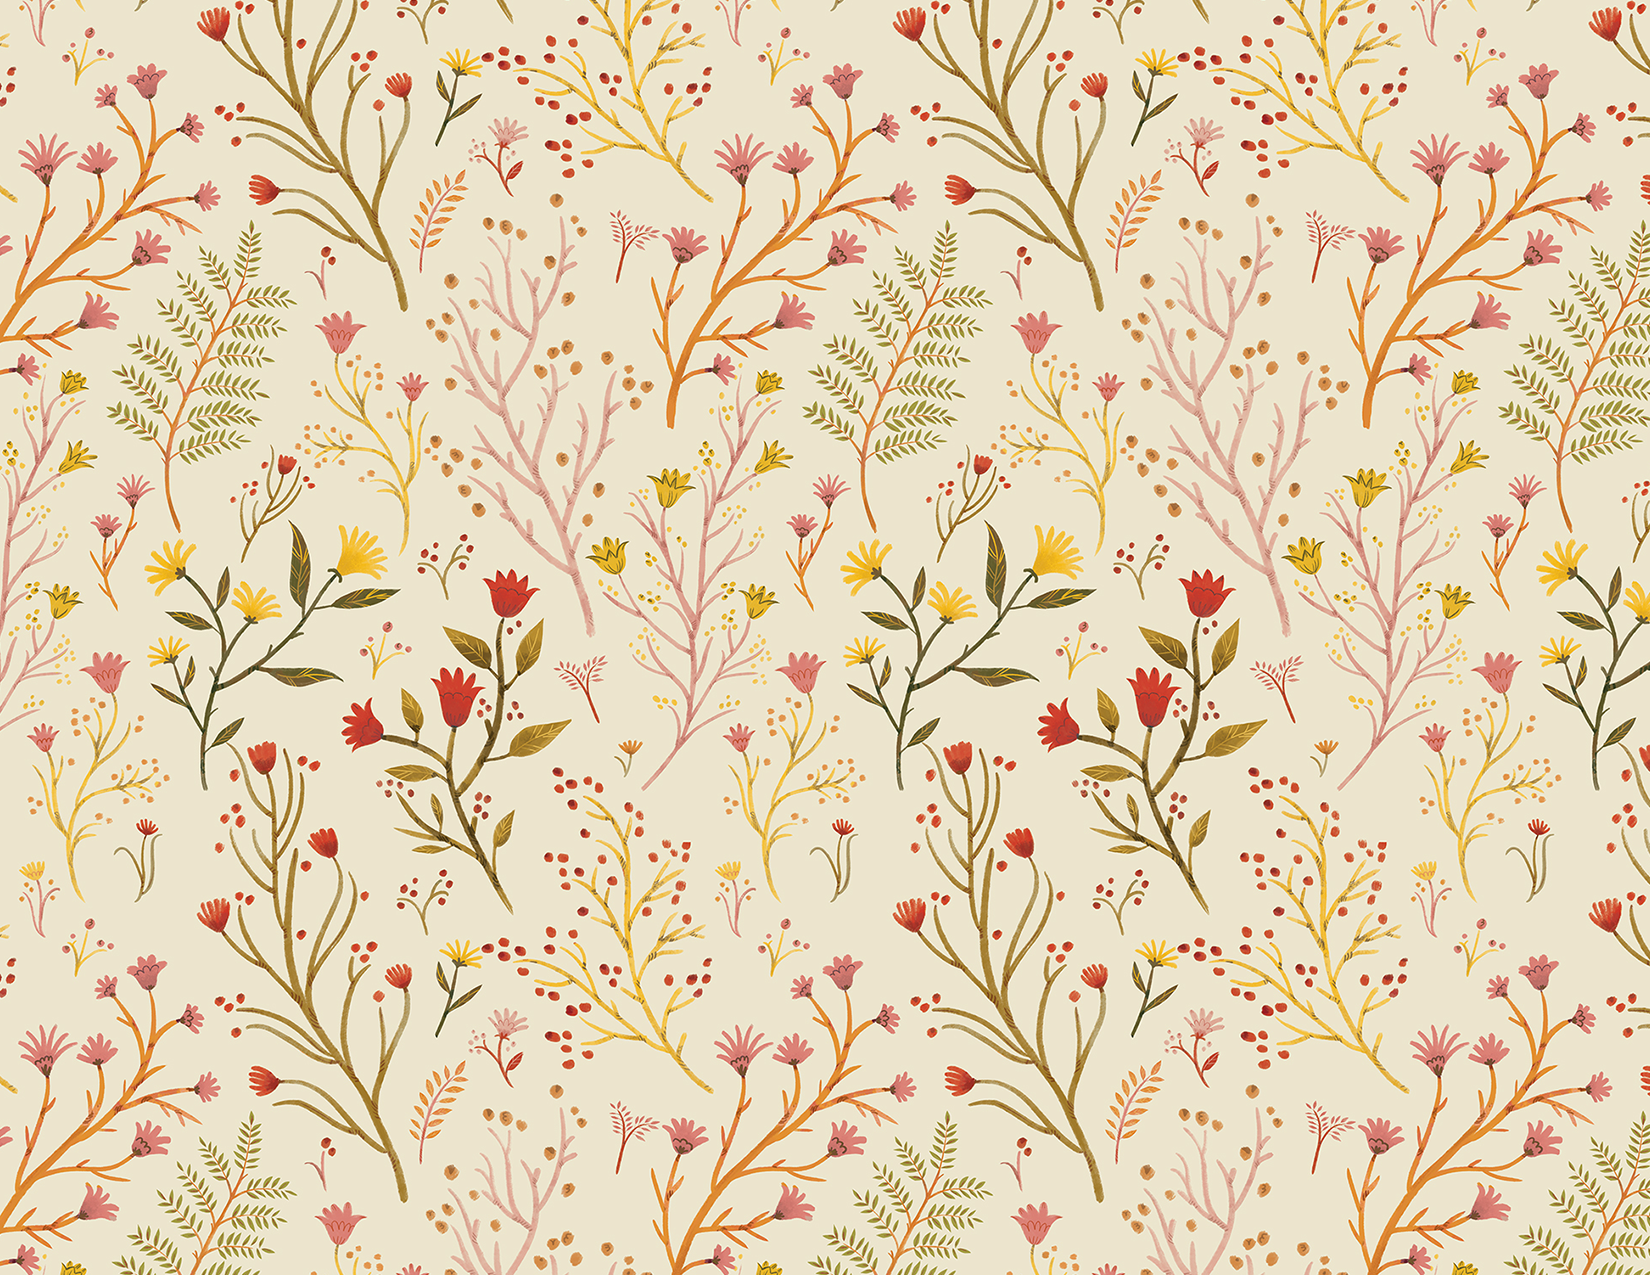 Meadow flowers pattern. Textile illustration. / 2019